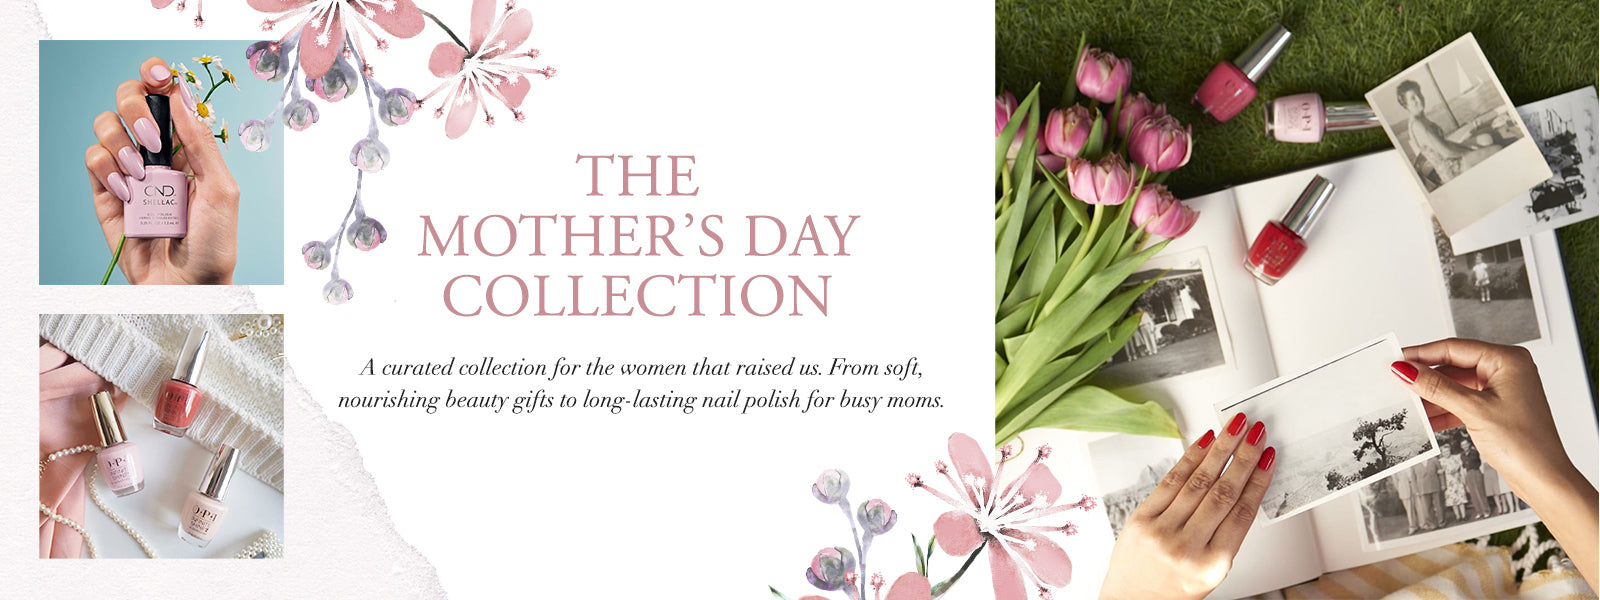 Mother's Day 2020 Collection